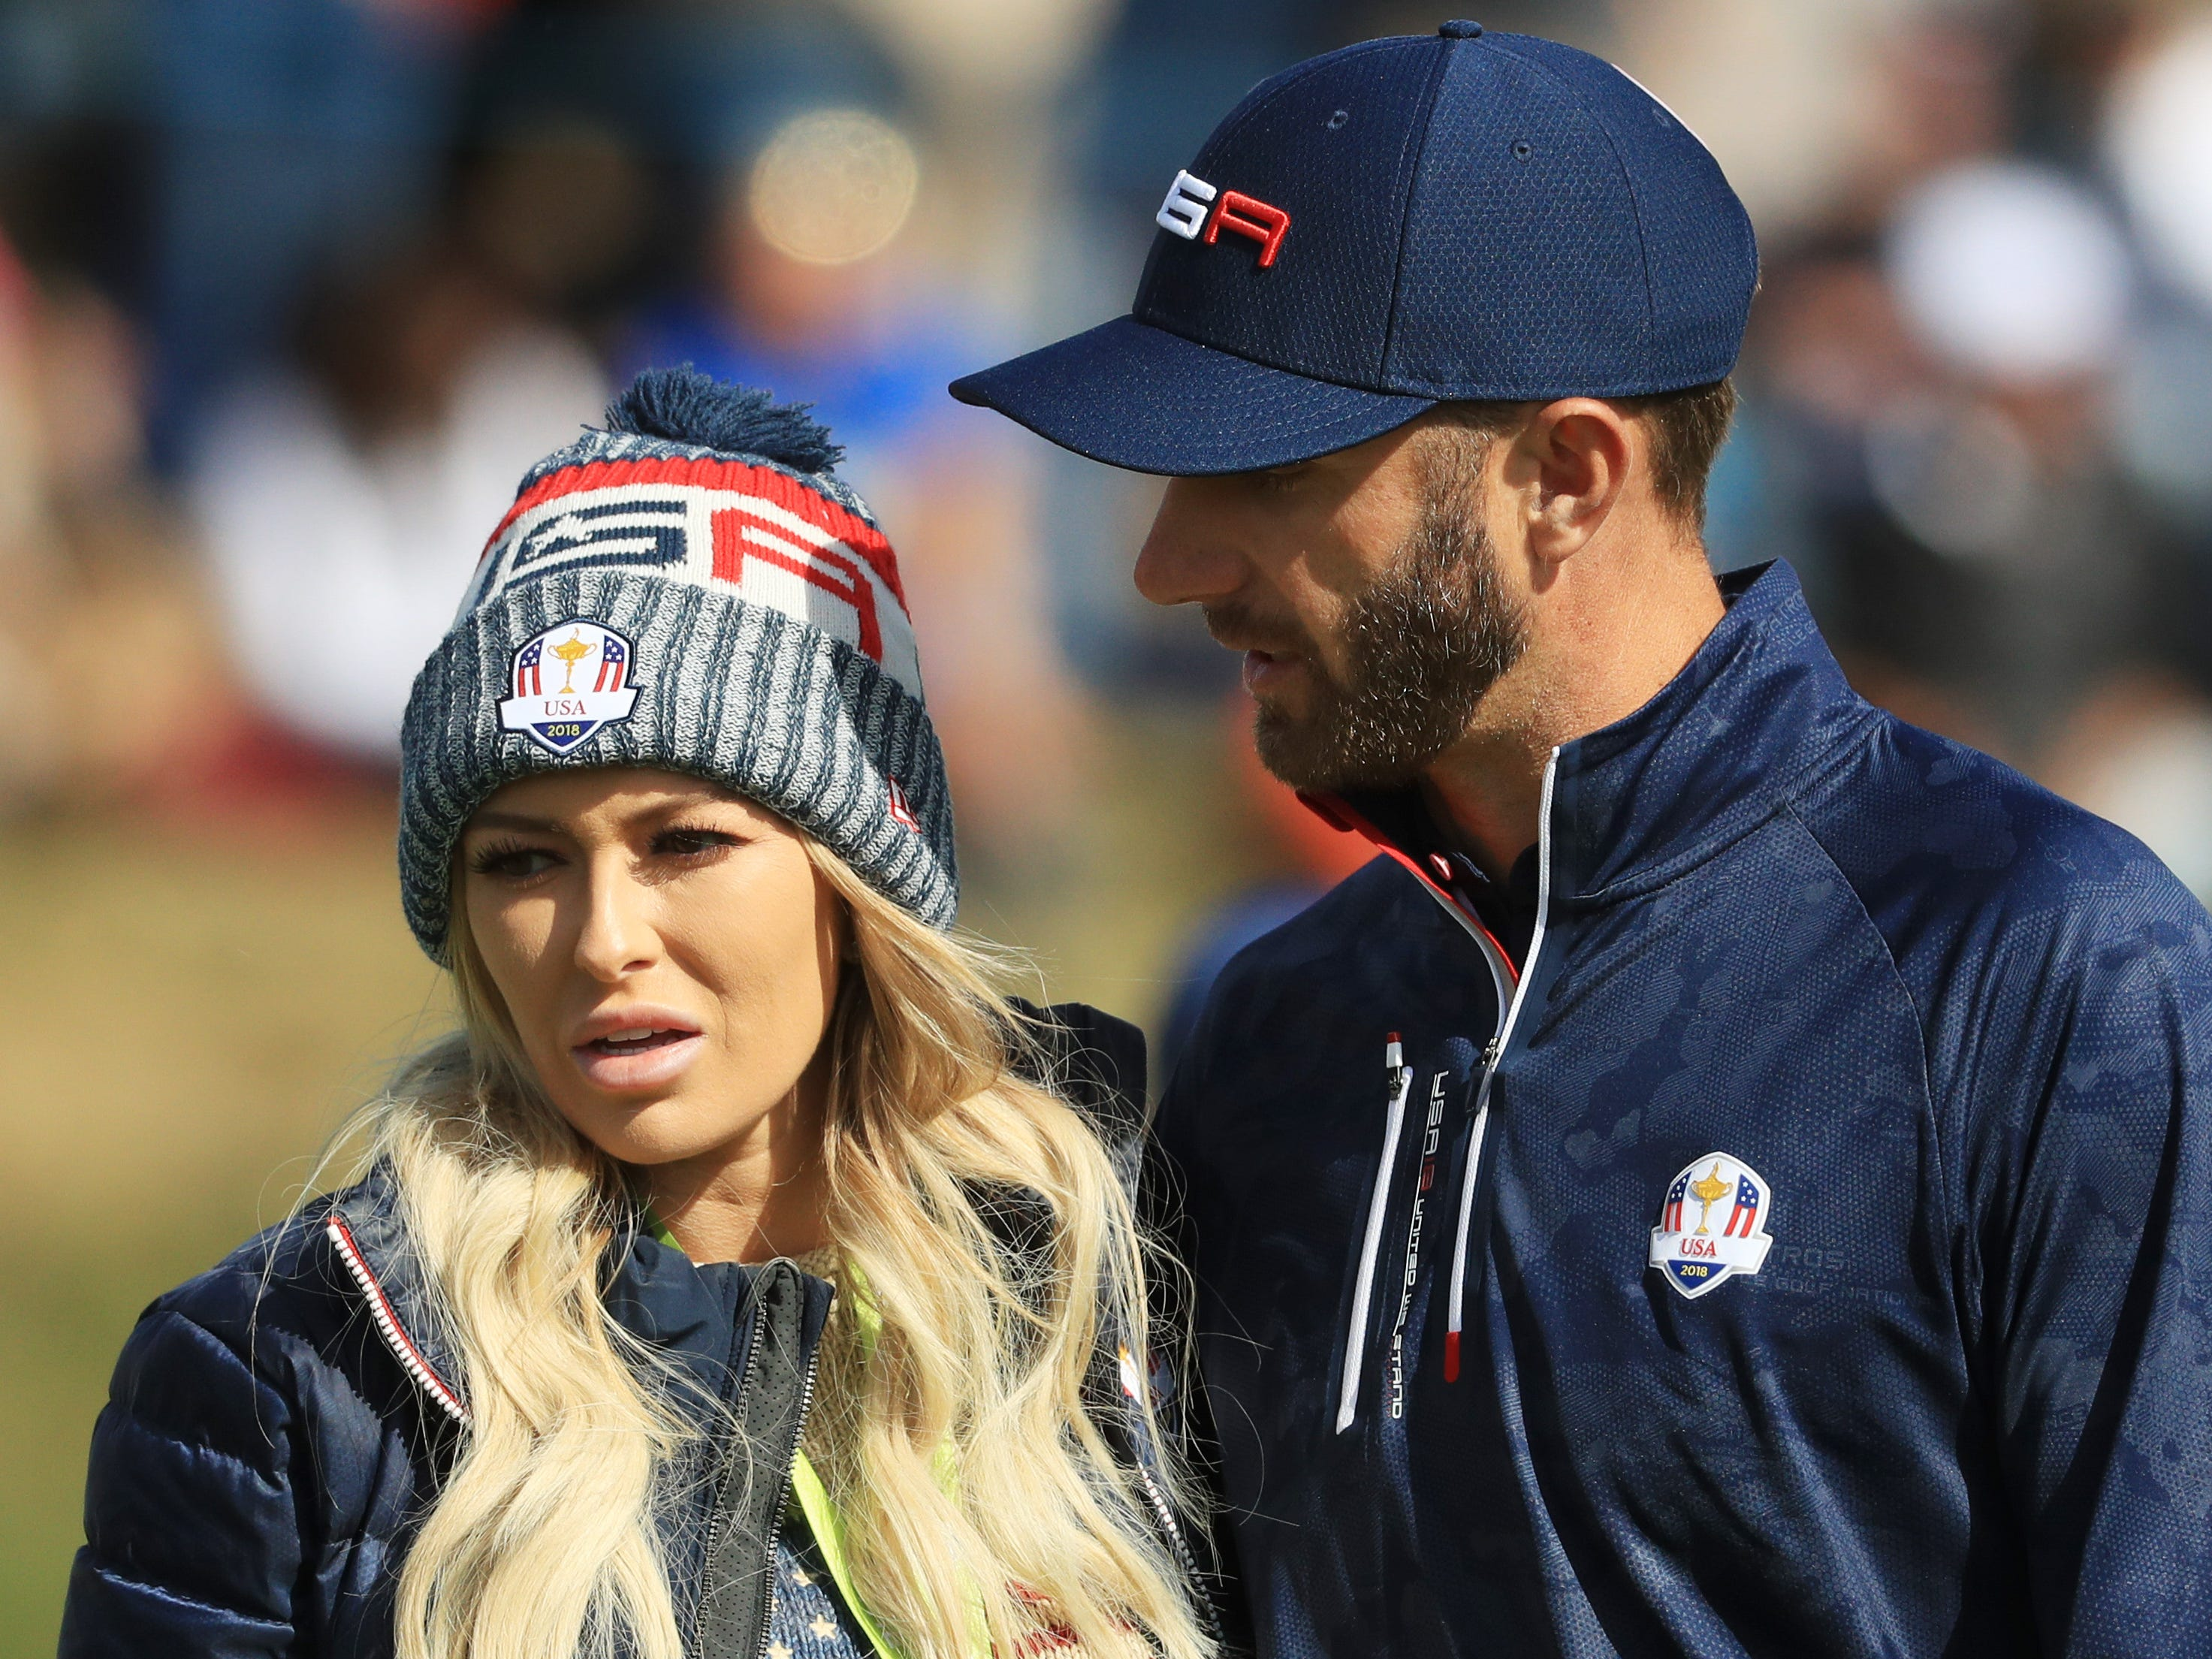 Dustin Johnson and his girlfriend, Paulina Gretzky, walk together after he lost his morning fourball match on Saturday.